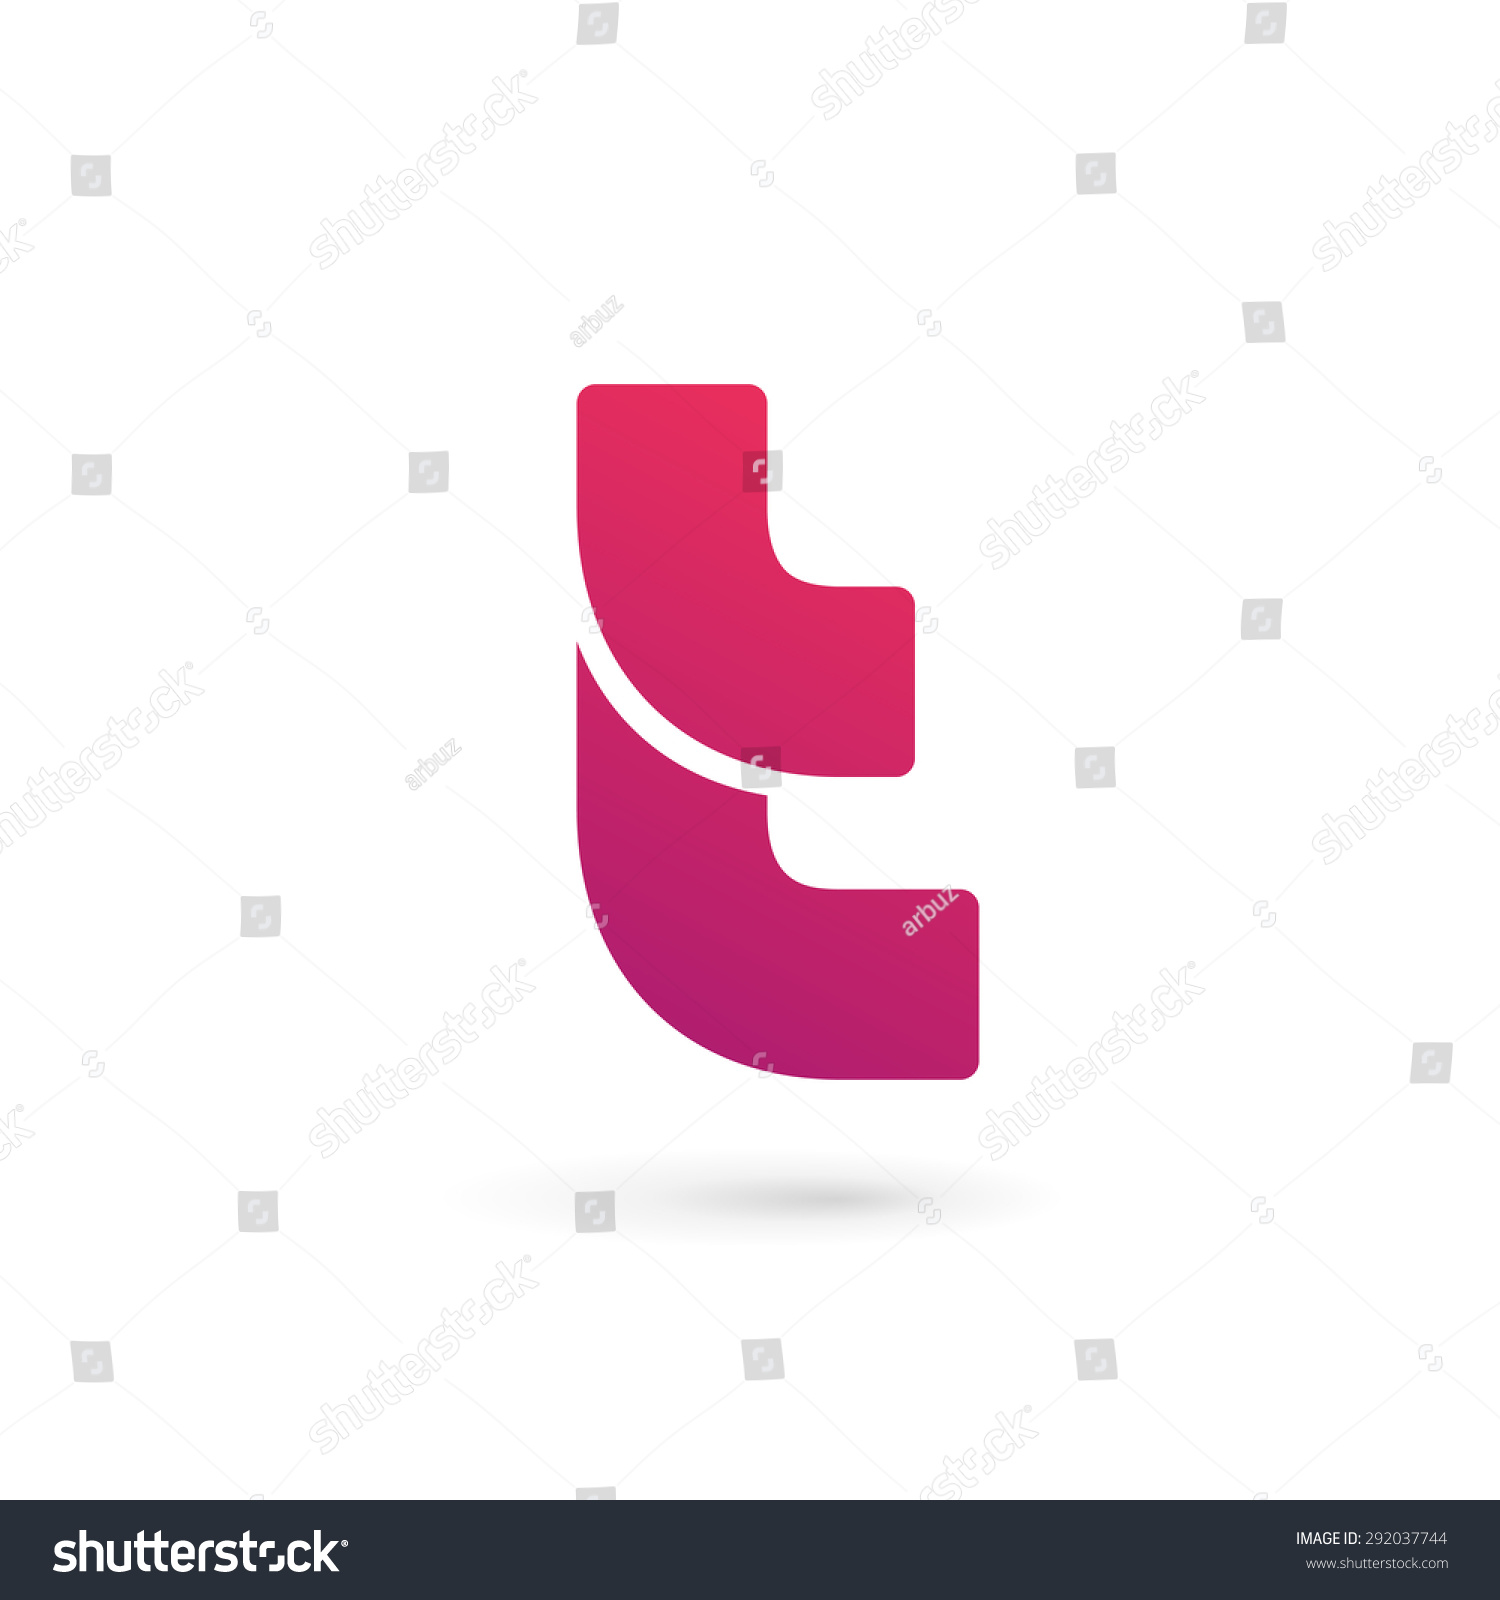 Letter T Logo Icon Design Template Elements Stock Vector Illustration ...